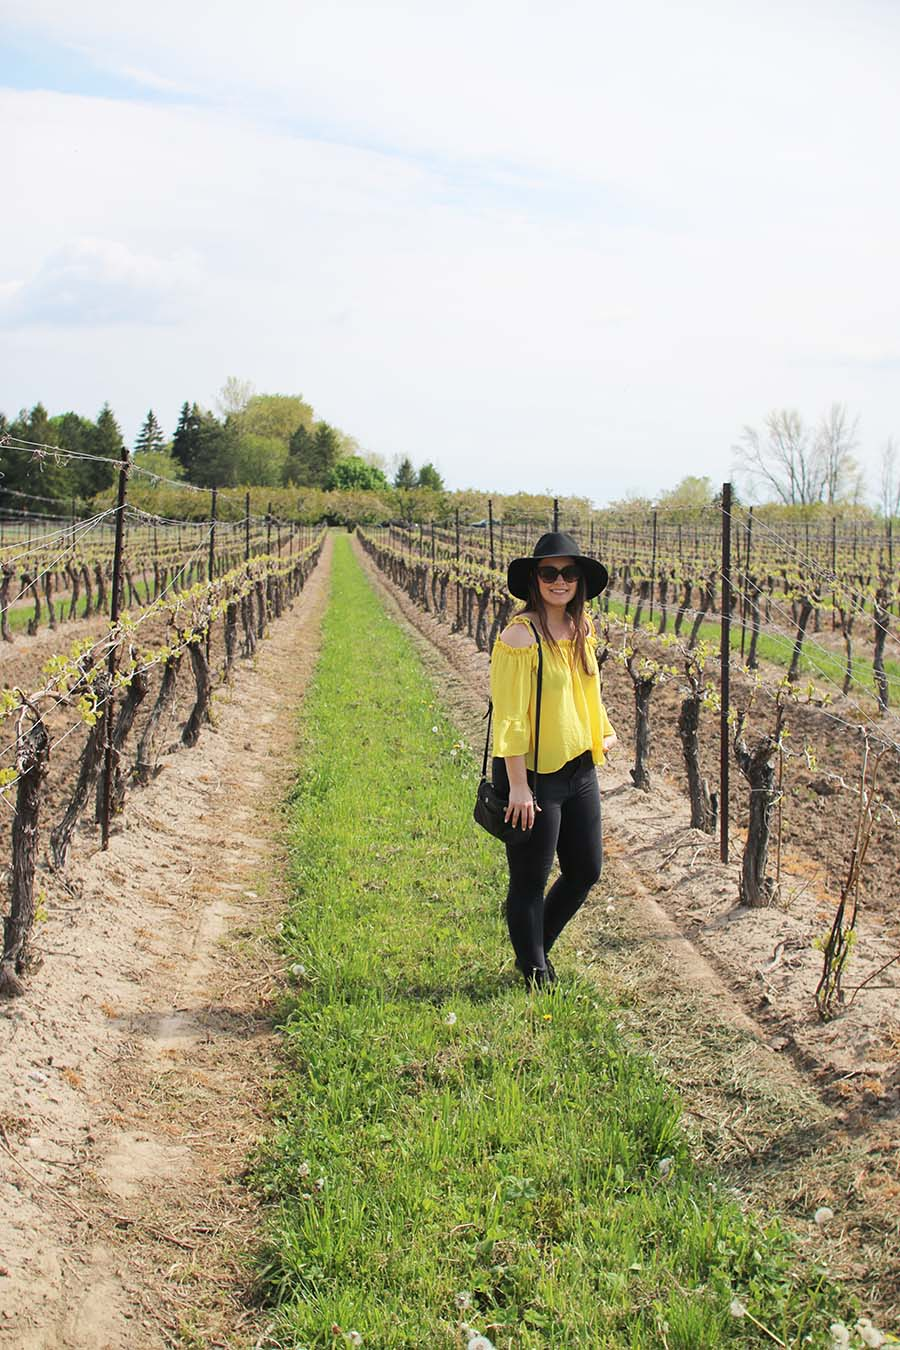 Travel // Niagara On The Lake: Wine Tasting at Peller Estates (part 3/4)